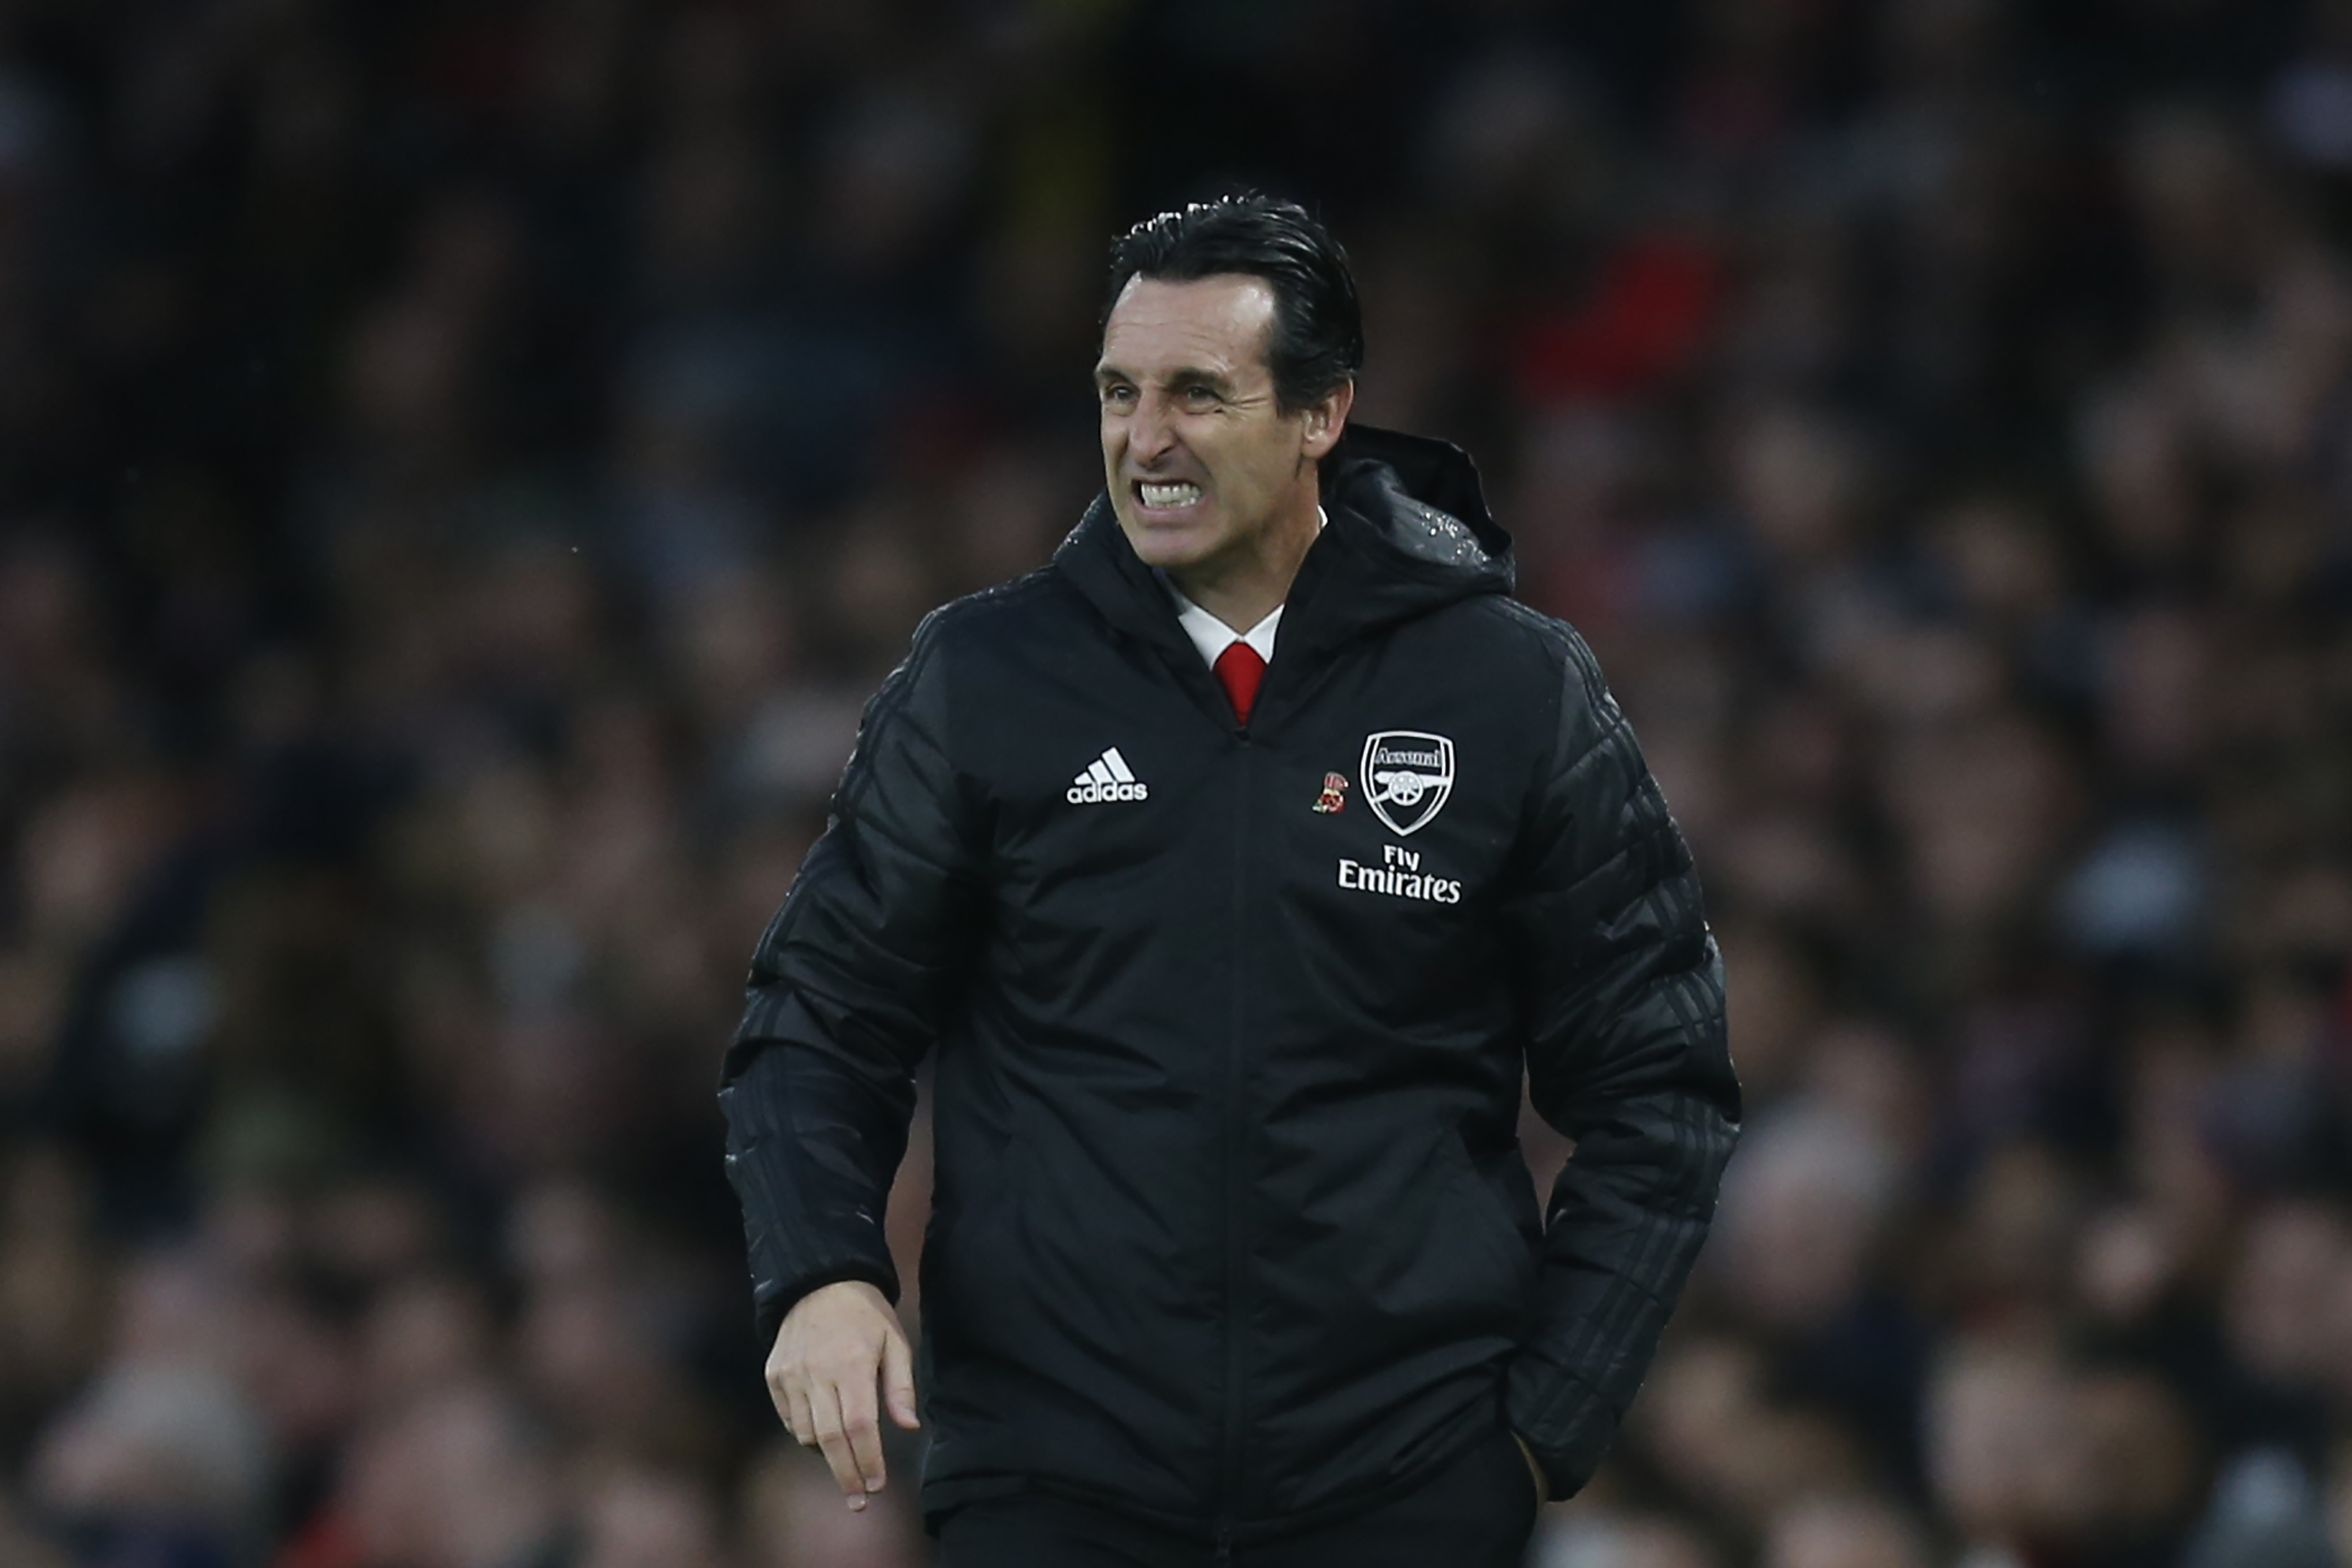 Work in progress or failing plan? Emery's problems mount at Arsenal